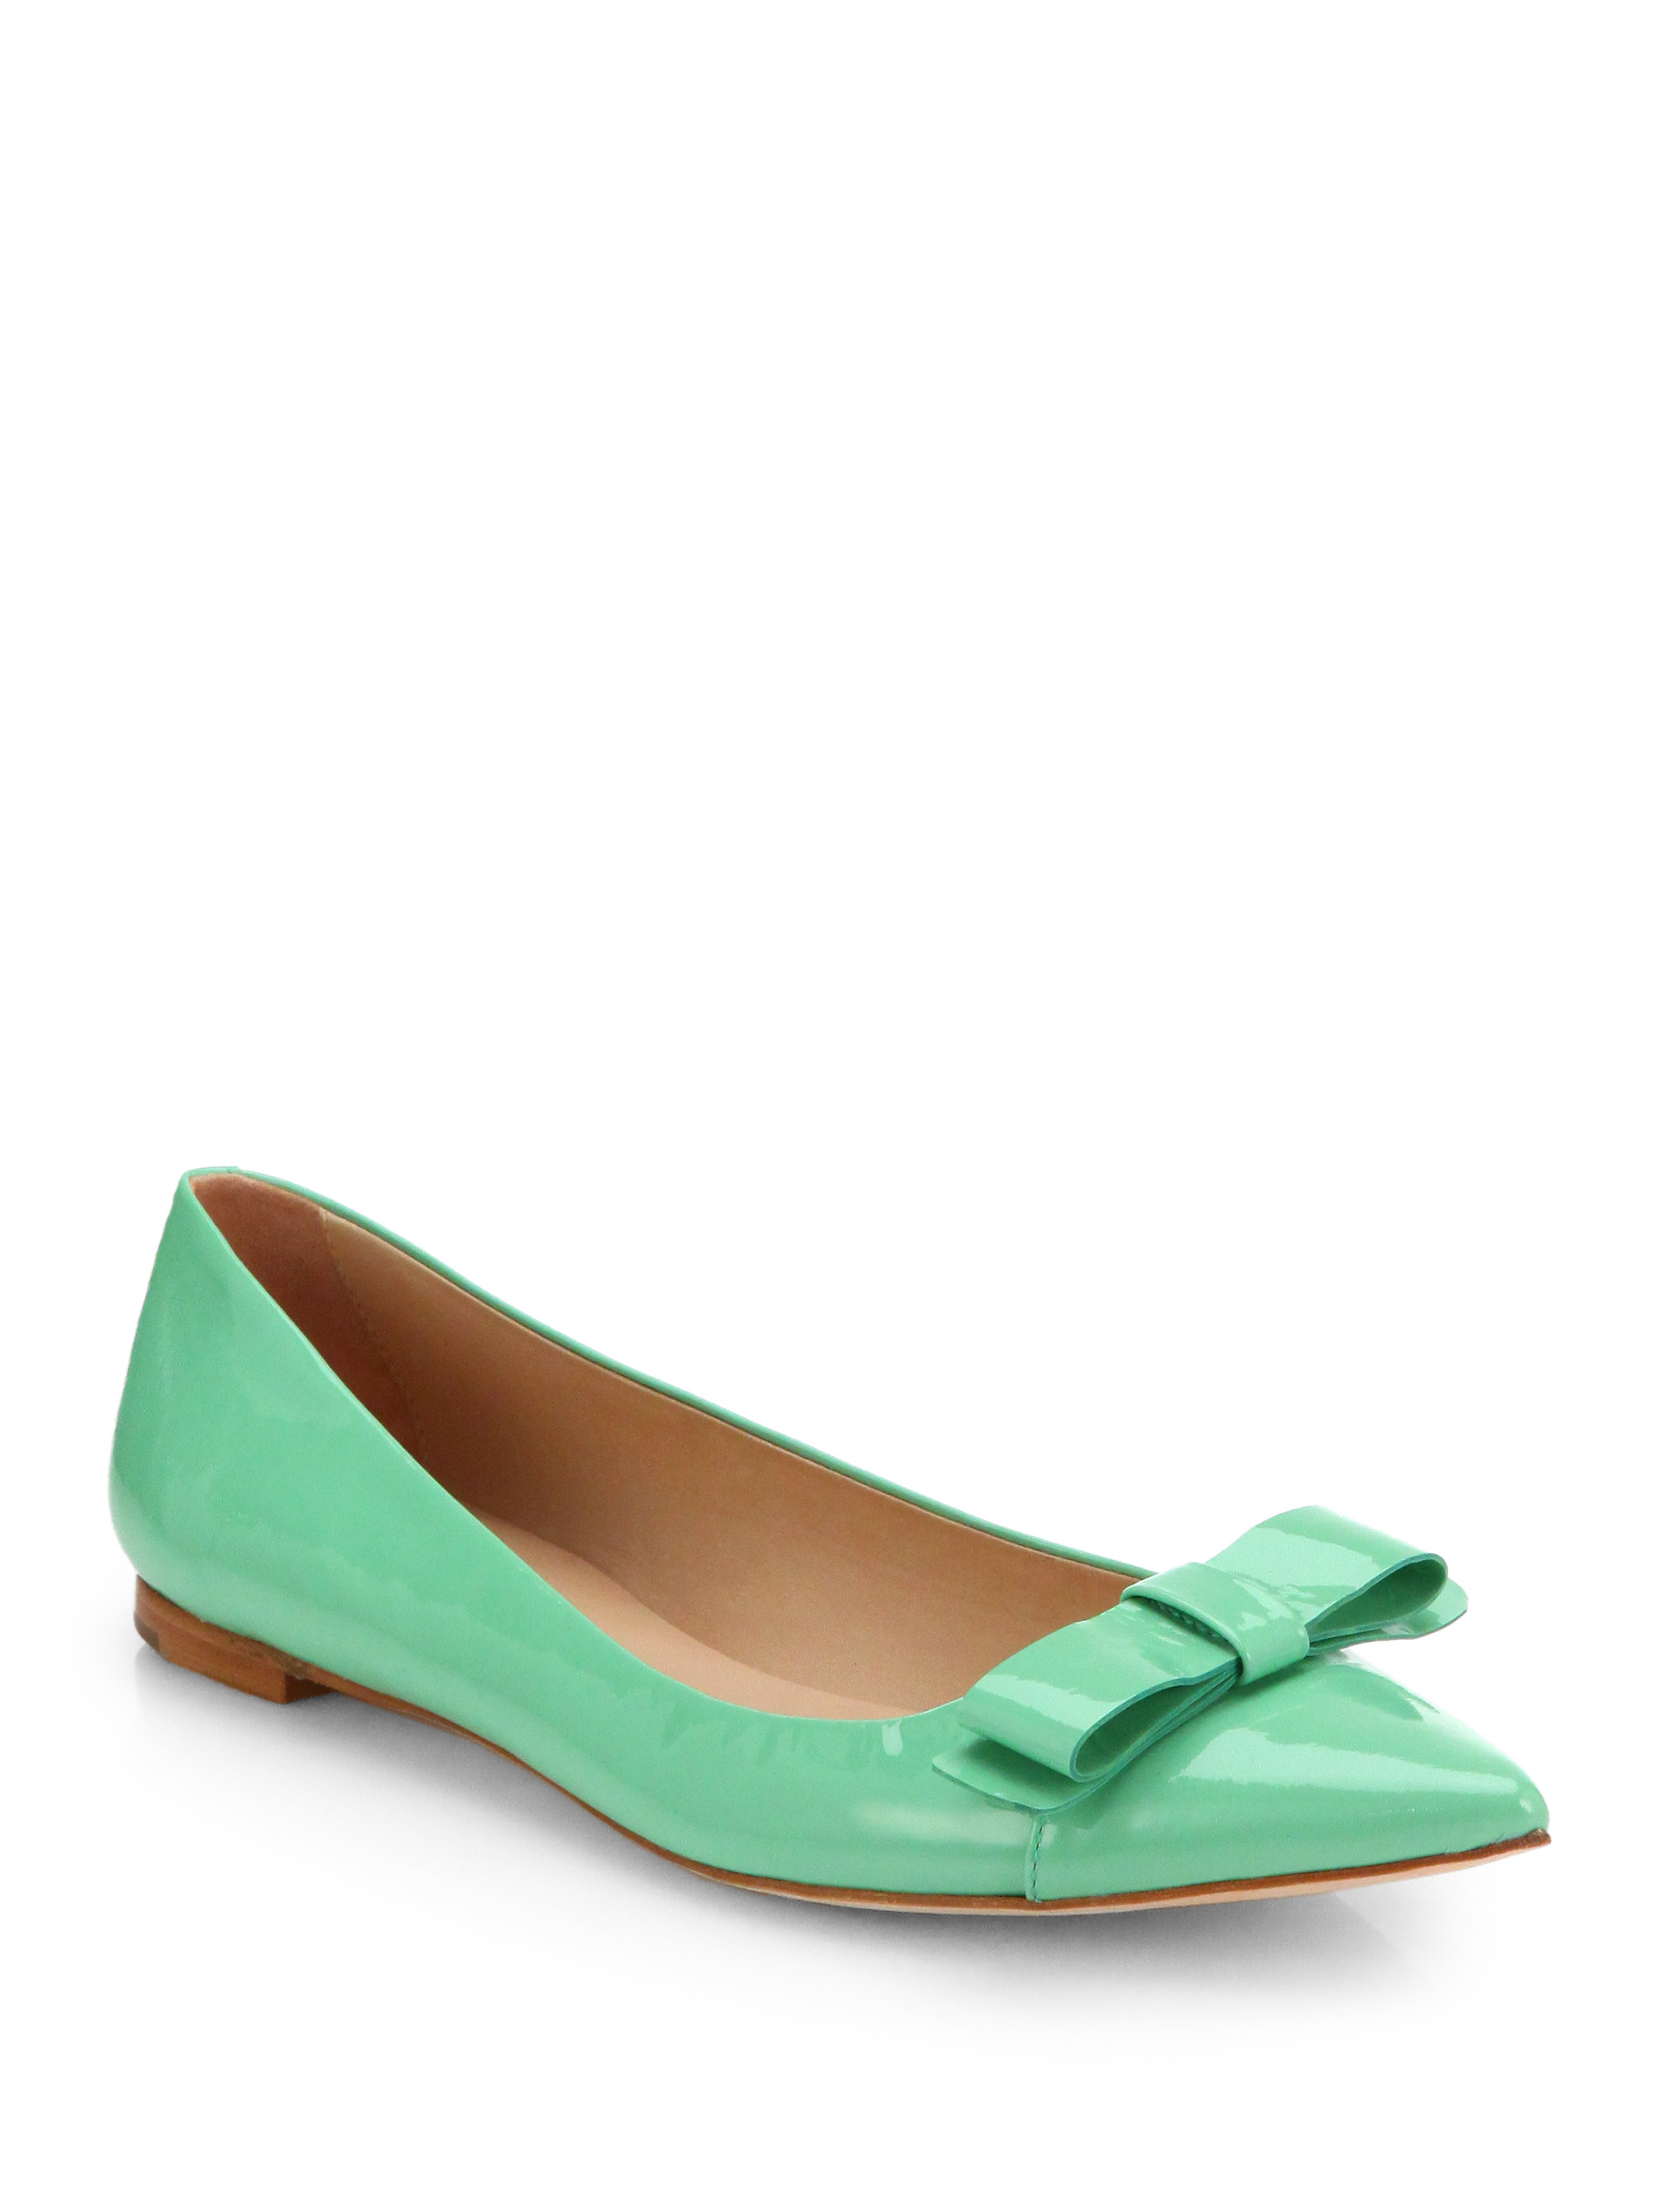 Lyst kate spade new york gabe pointed bow flats in green for Kate spade new york flats